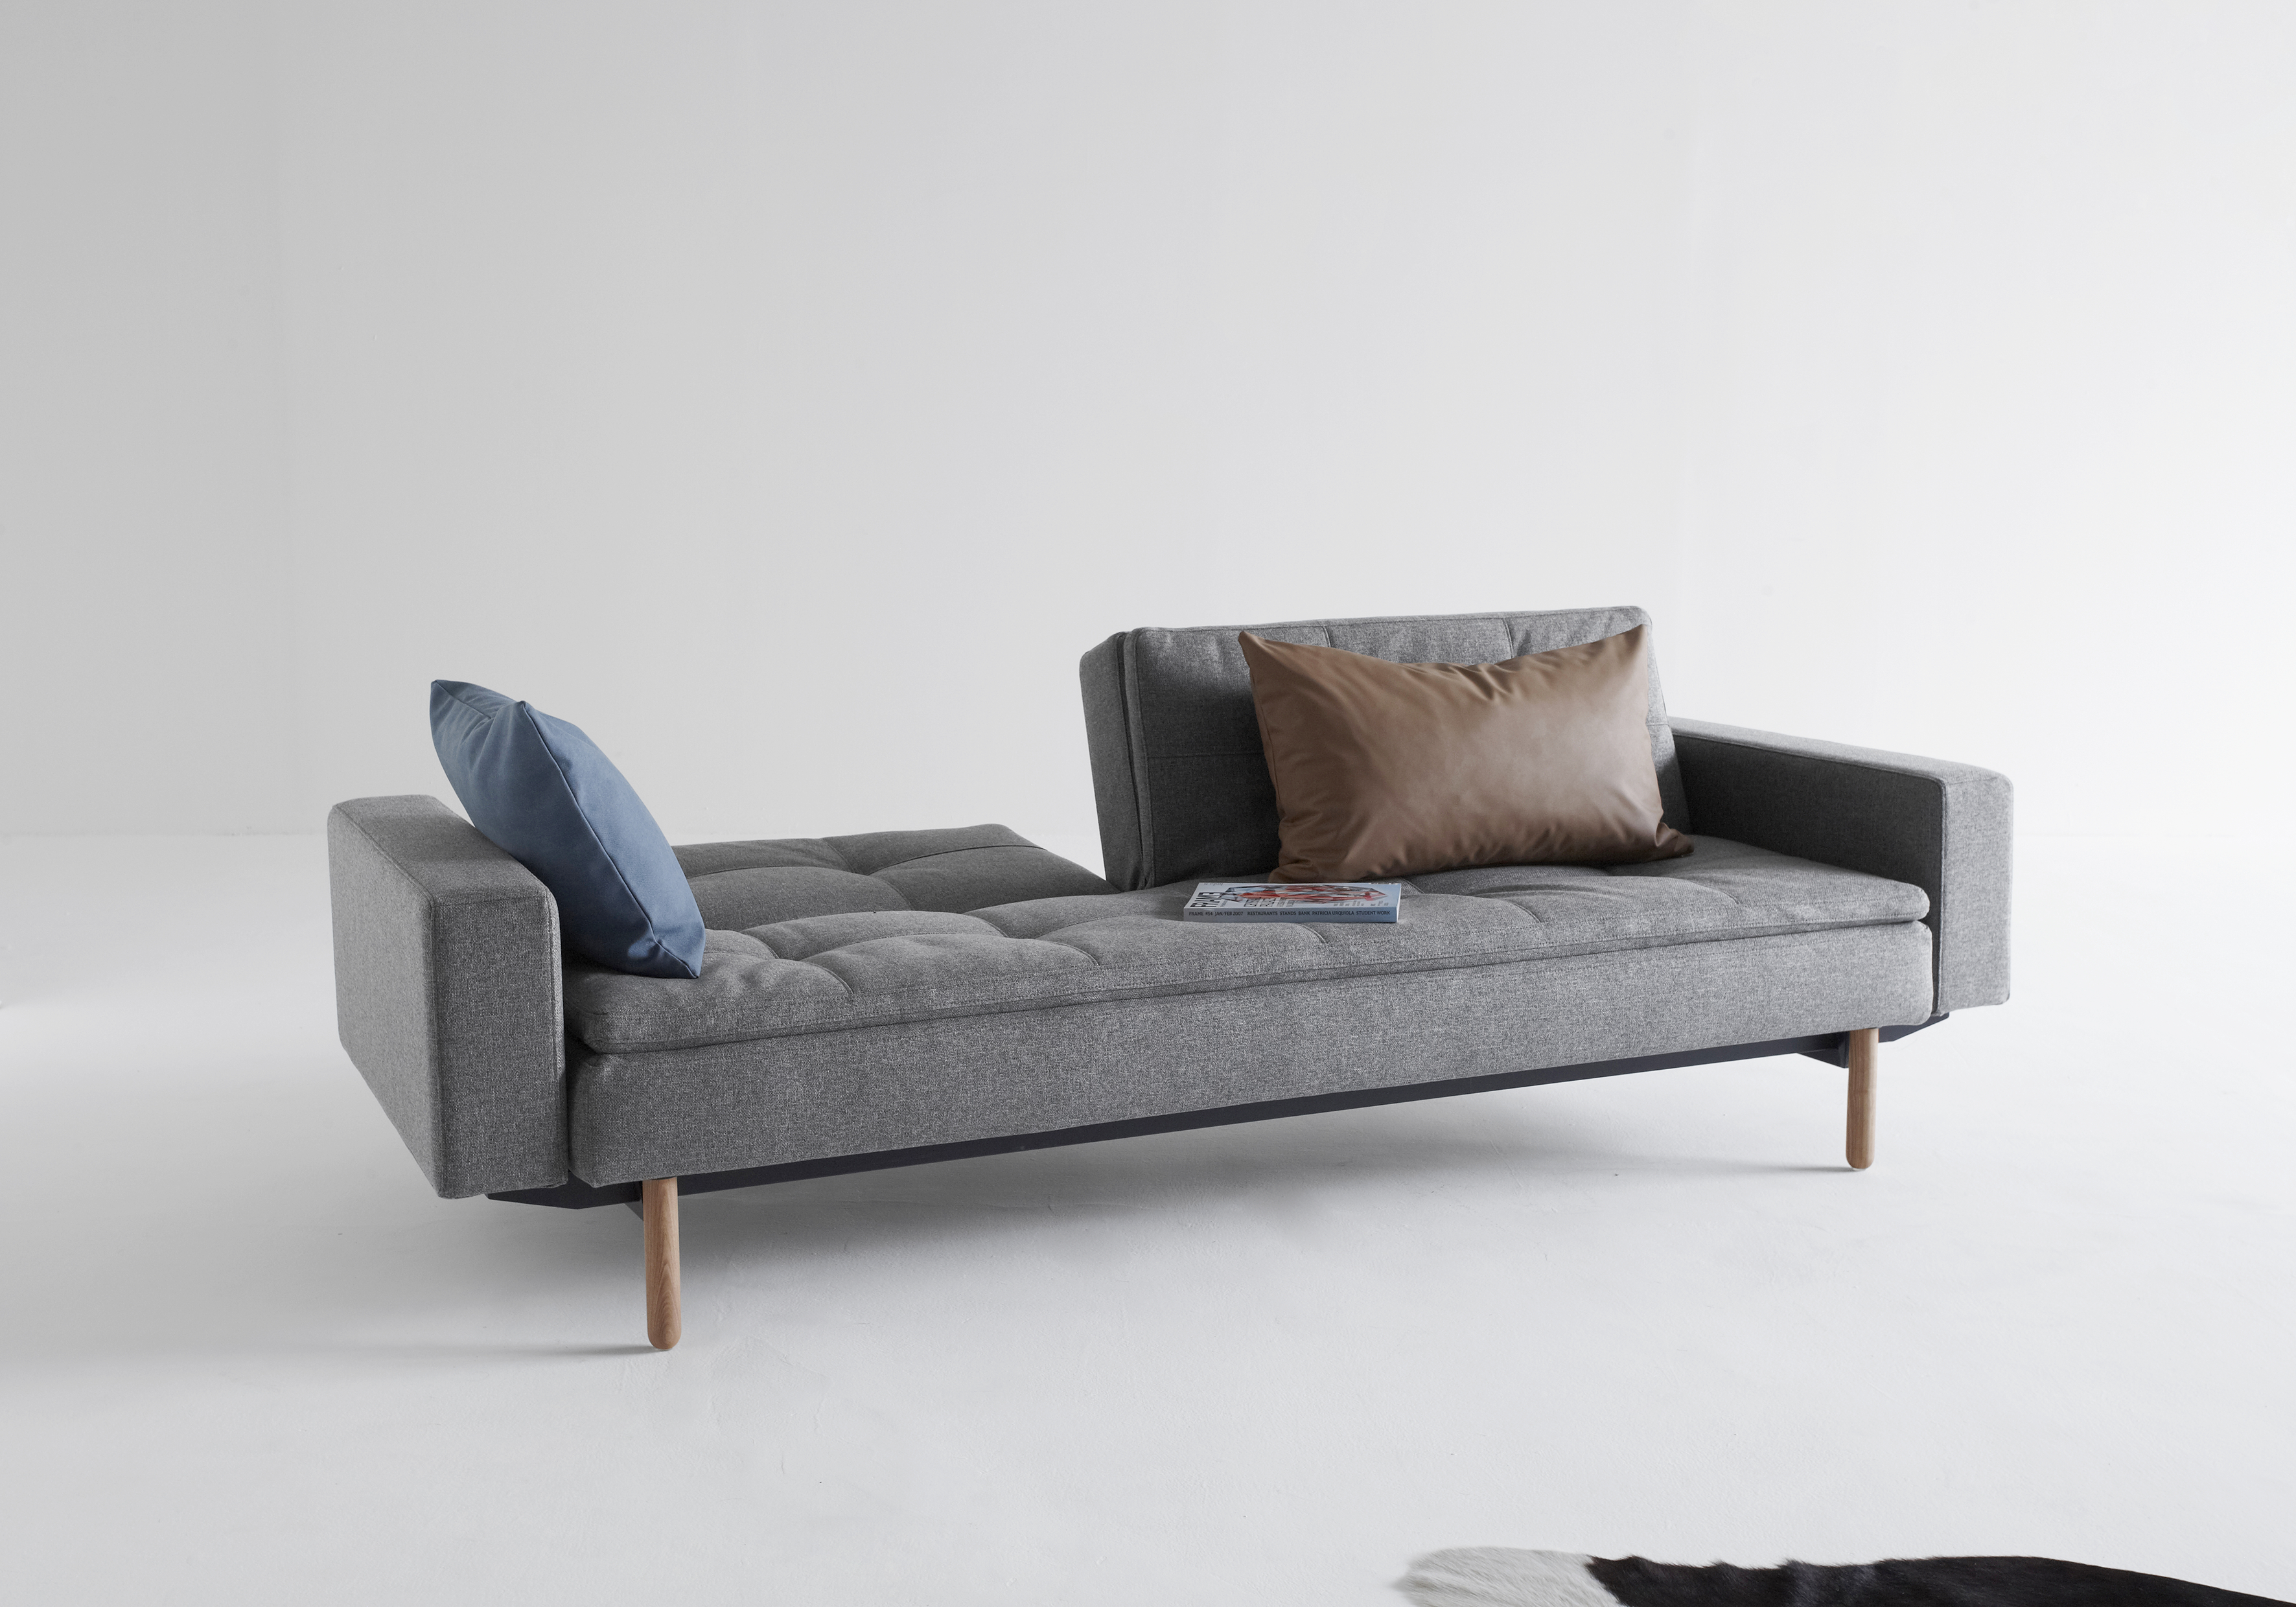 ISTYLE_2015_-_DUBLEXO_SOFA_BED_WITH_ARMRESTS_STEM_LIGHT_WOOD_-_563_TWIST_CHARCOAL_-_RELAX_POSITION